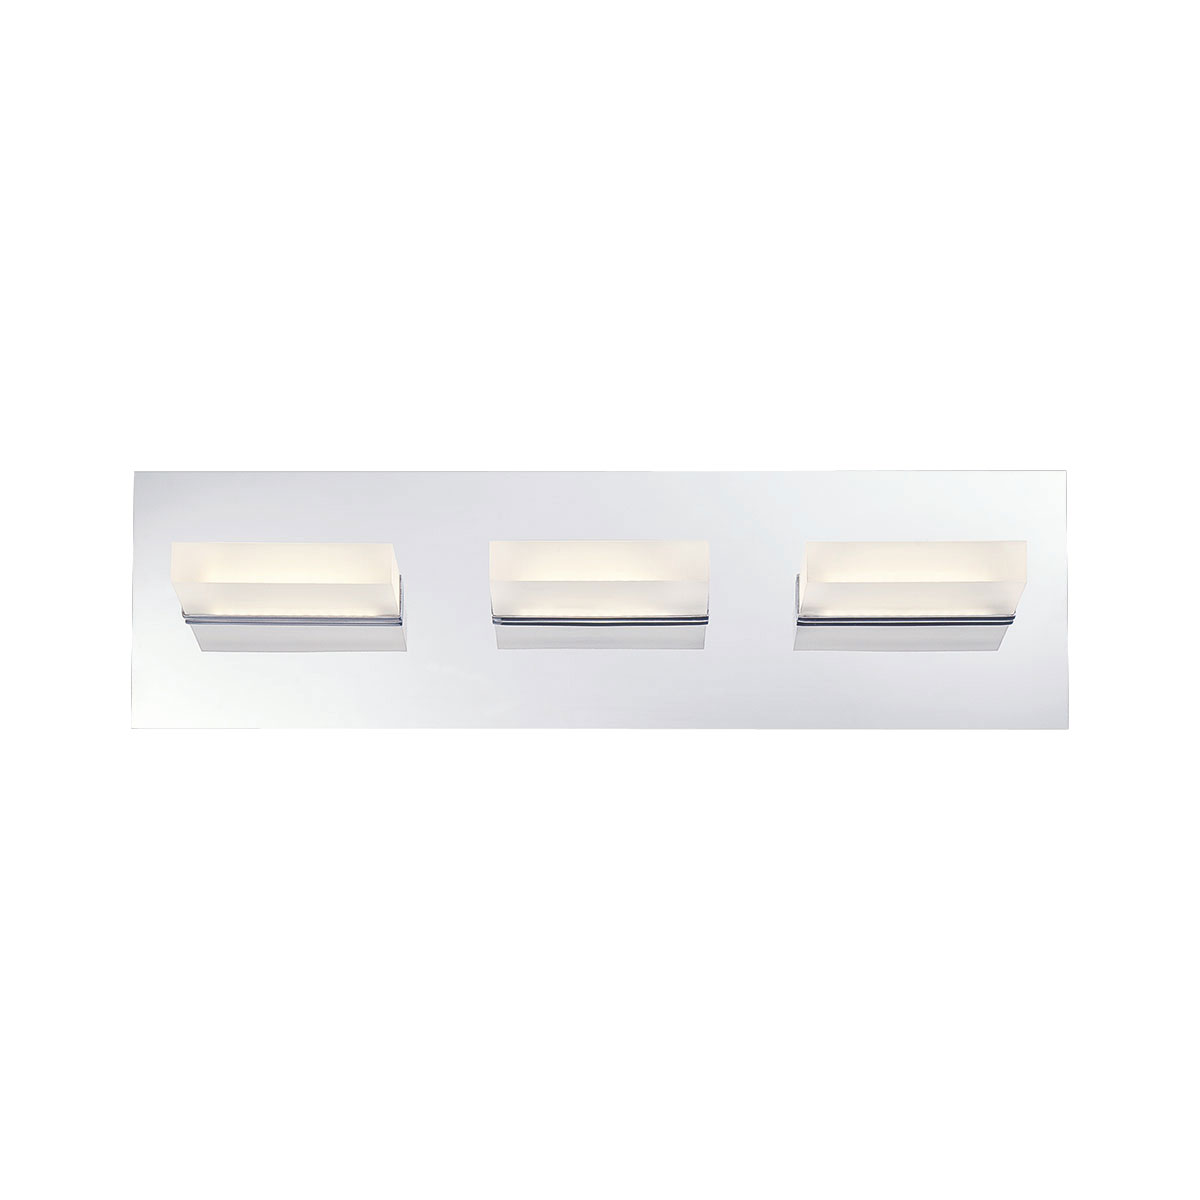 Olson LED Bathroom Vanity Light by Eurofase  28020011